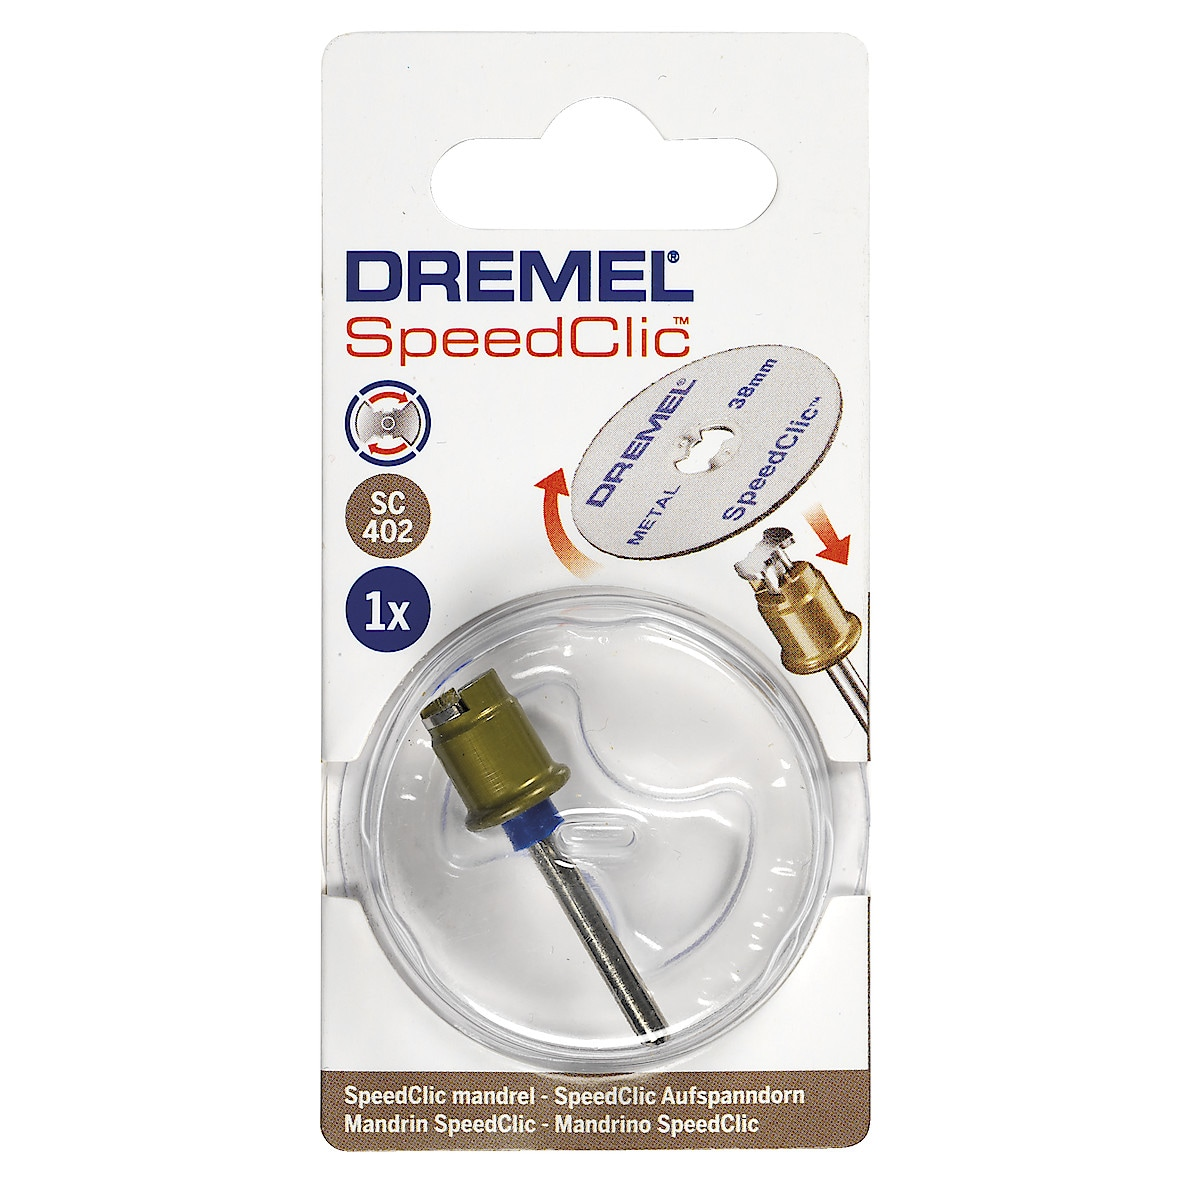 Dremel SpeedClic SC402 spindel